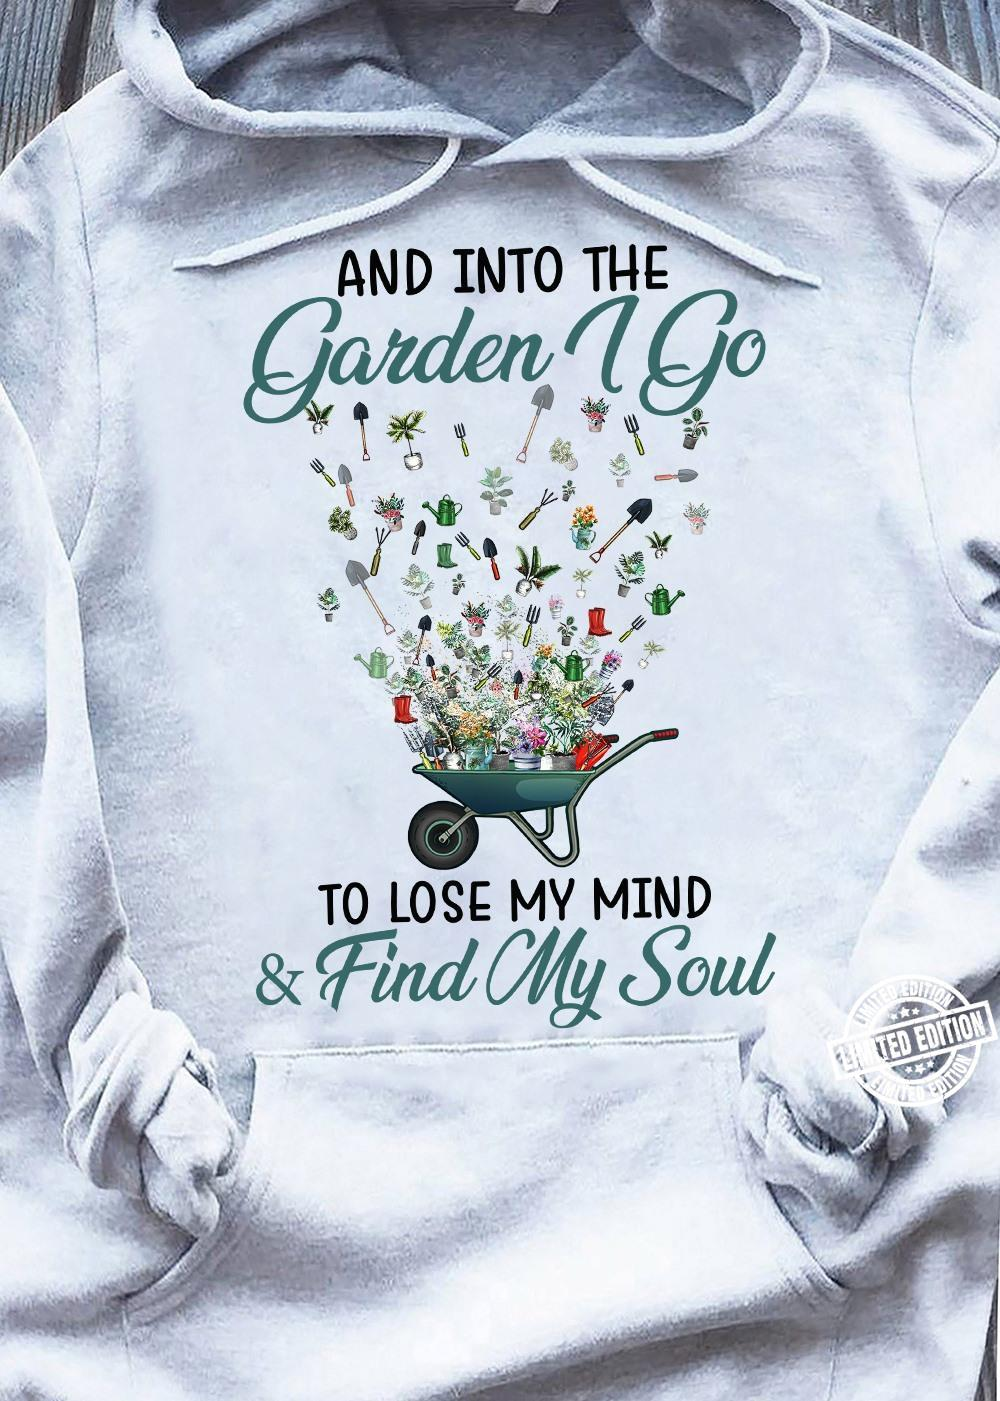 And into the garden i go to lose my mind & find my soul shirt